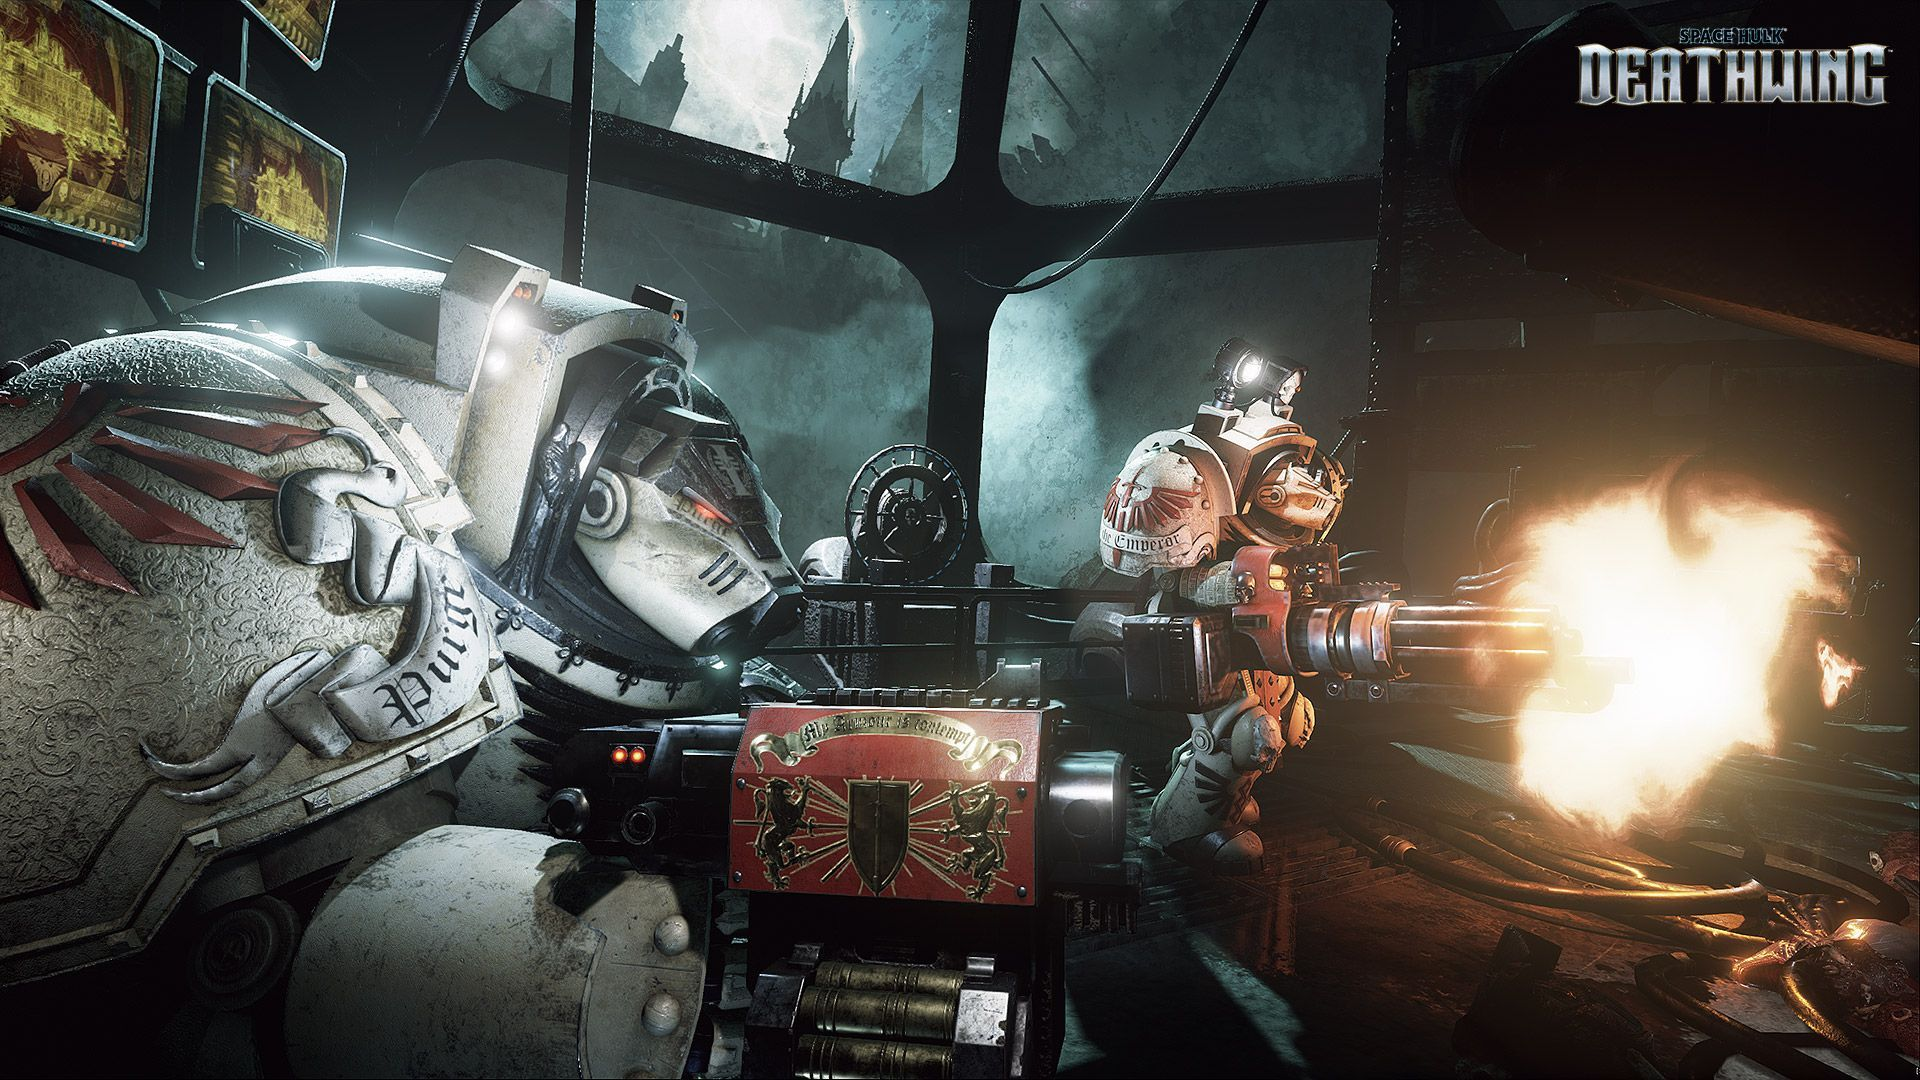 Space Hulk Deathwing Launch Trailer Check More At Https Www Spieletester De Watch Space Hulk Deathwing Launch Trailer